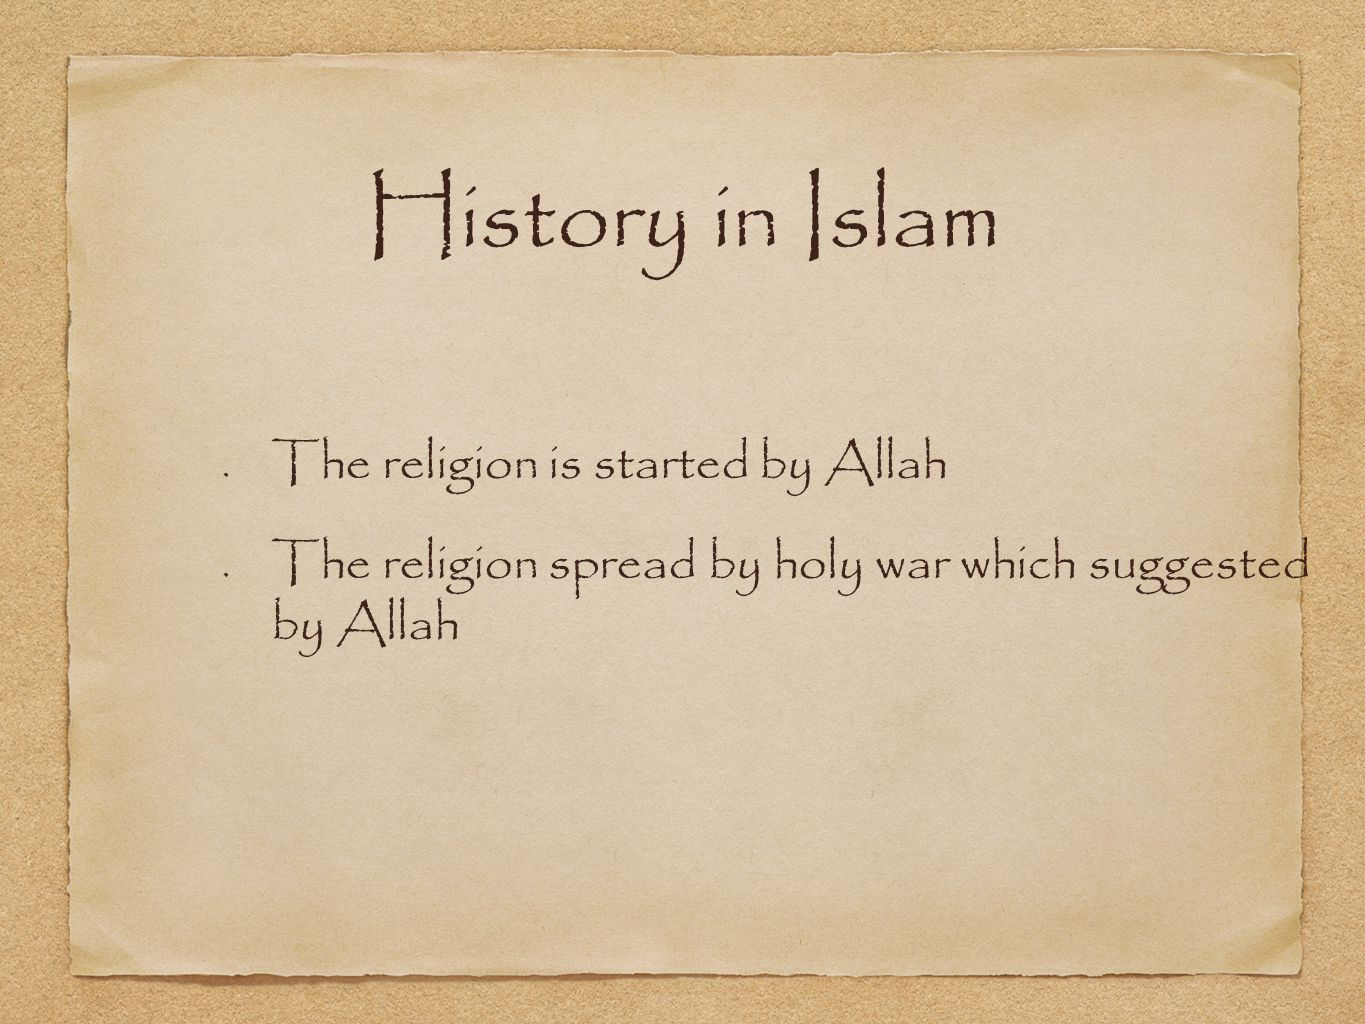 History in Islam The religion is started by Allah The religion spread by holy war which suggested by Allah